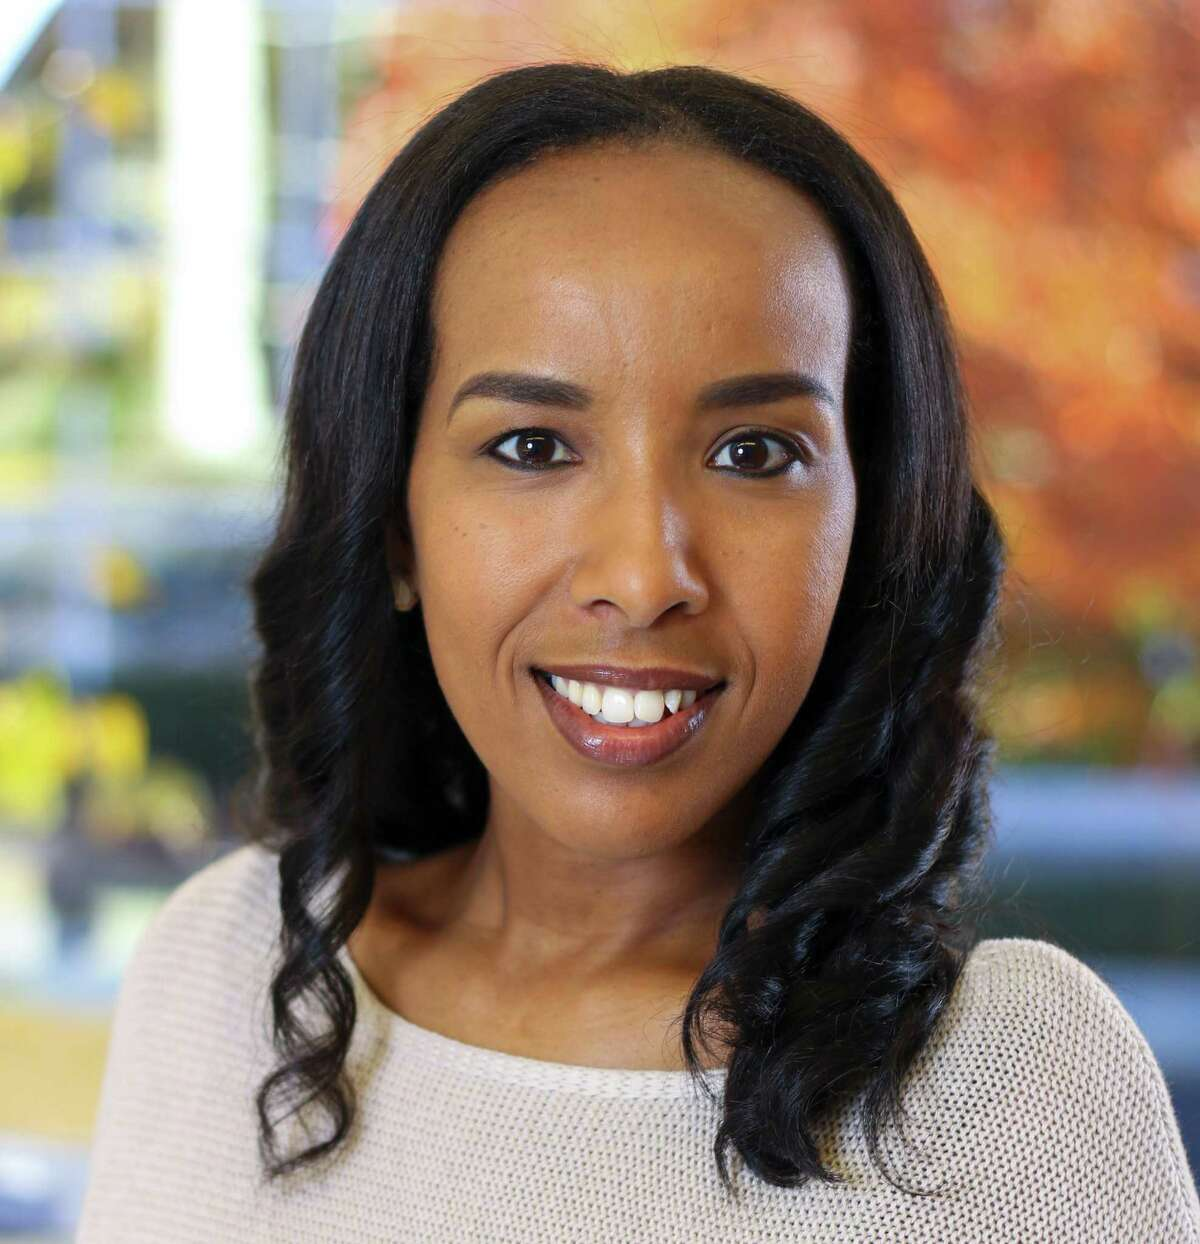 Kidest Shiferaw is a Stamford-based HR surveillance analyst for Synchrony and a member of the company's African American Network +.